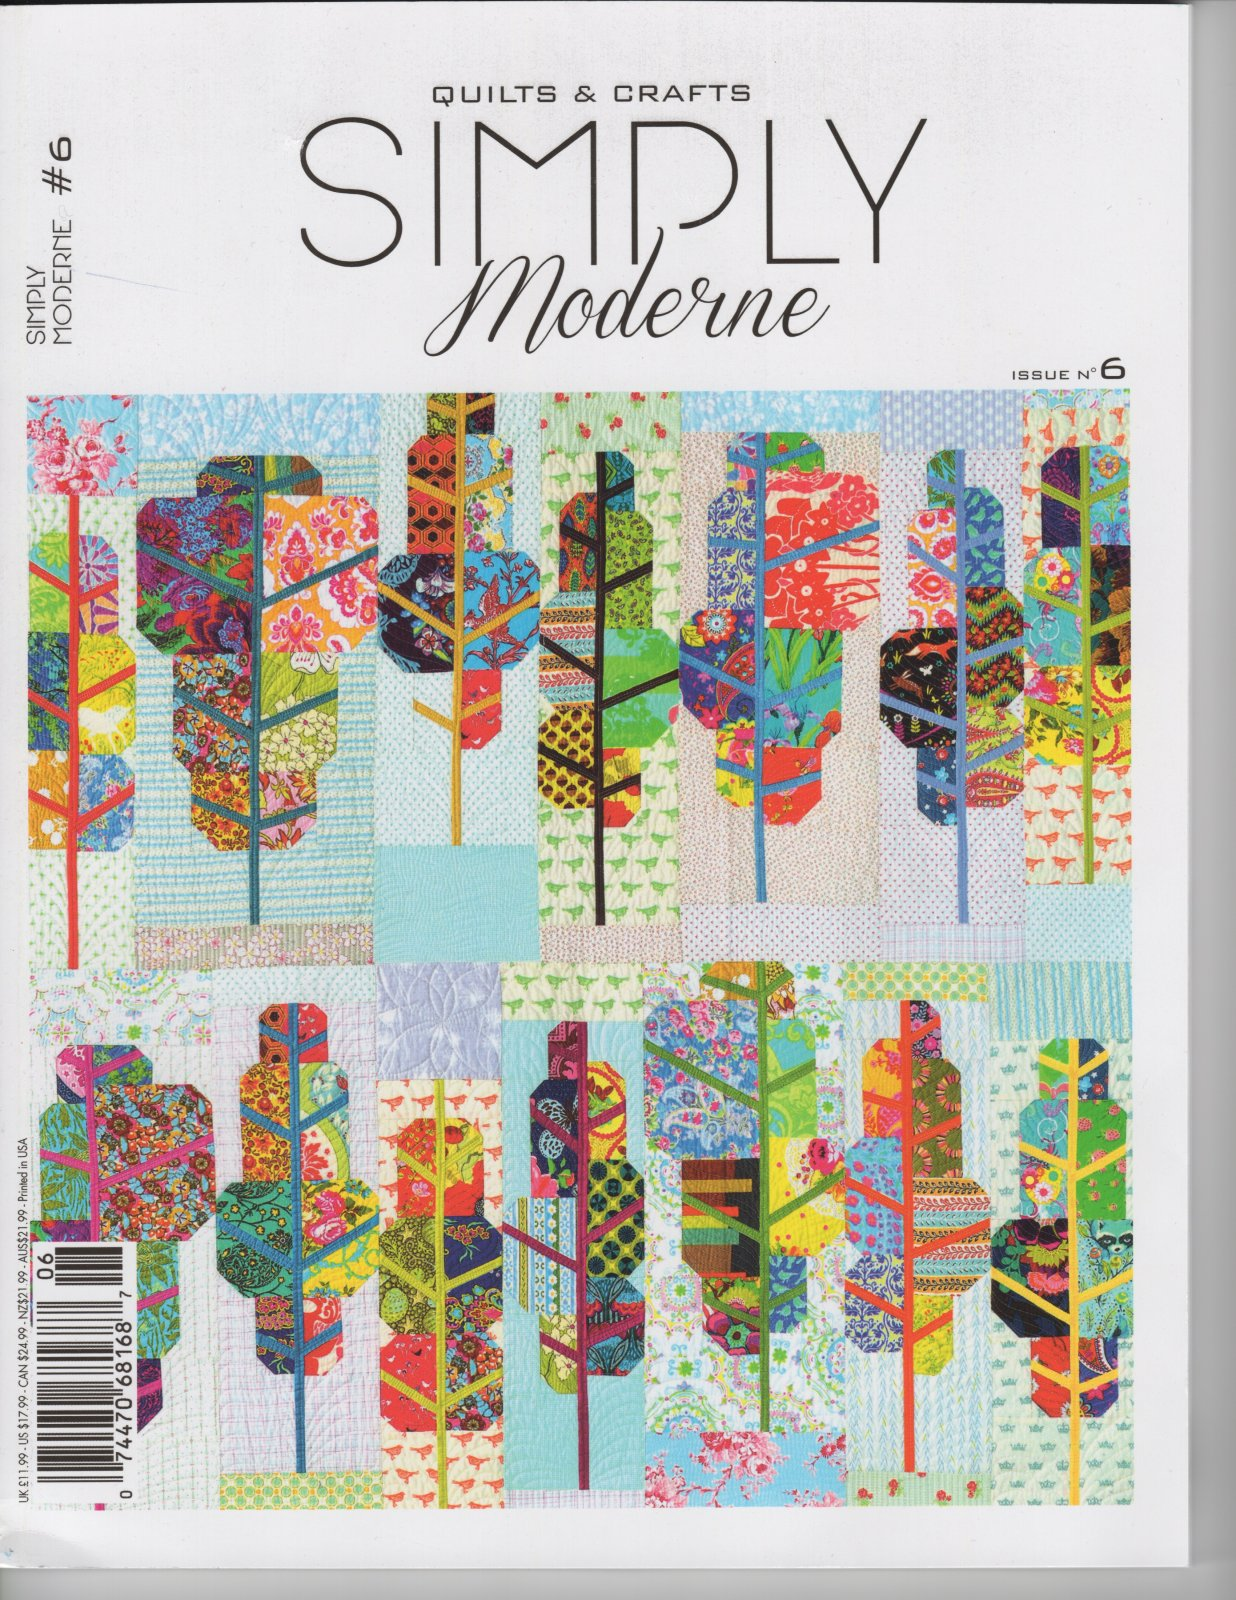 Quiltmania Simply Moderne issue #6